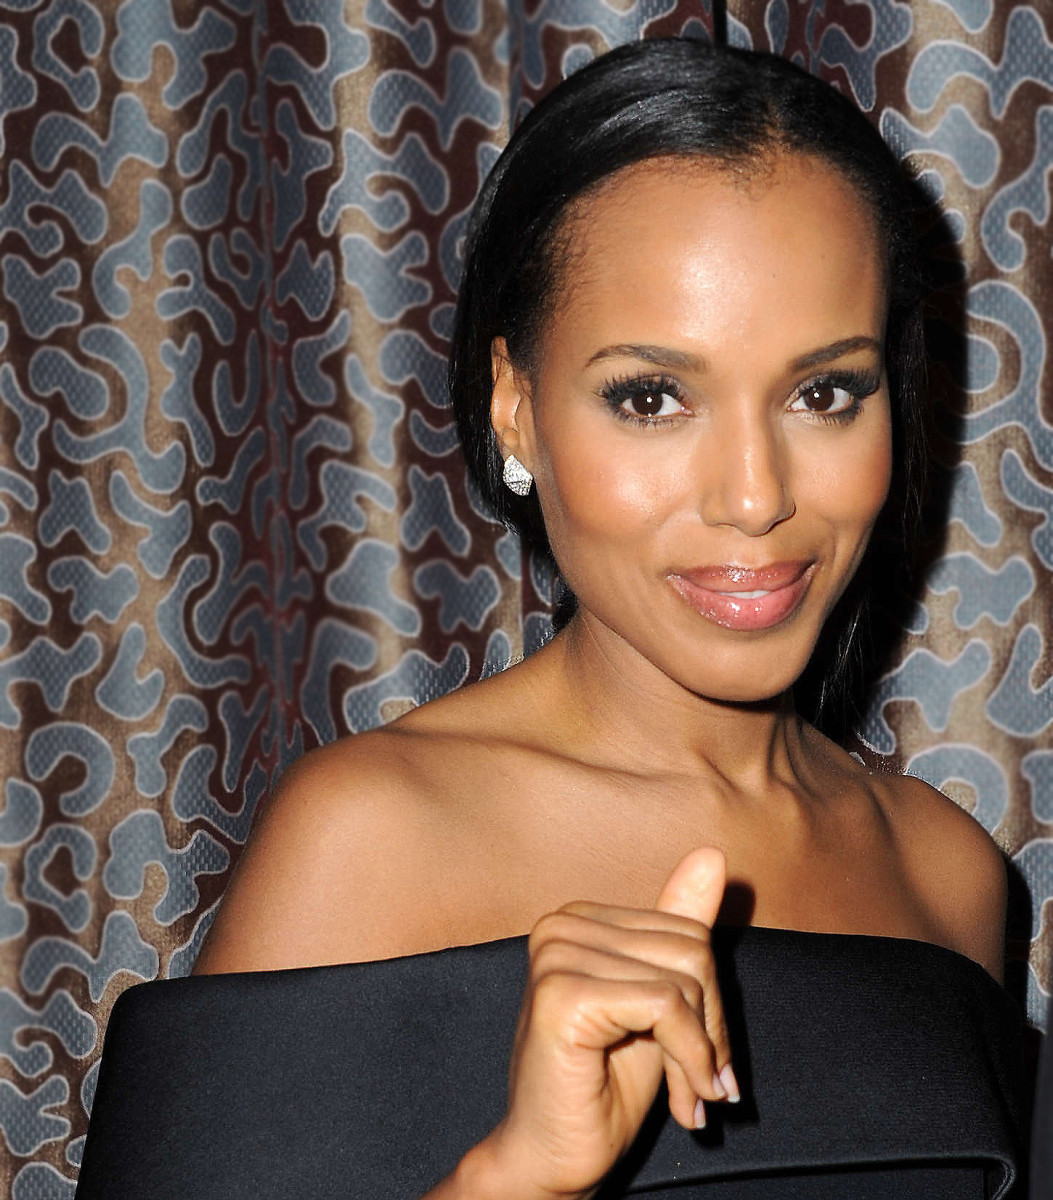 Kerry Washington is adding nail polish to her celebrity endorsements portfolio